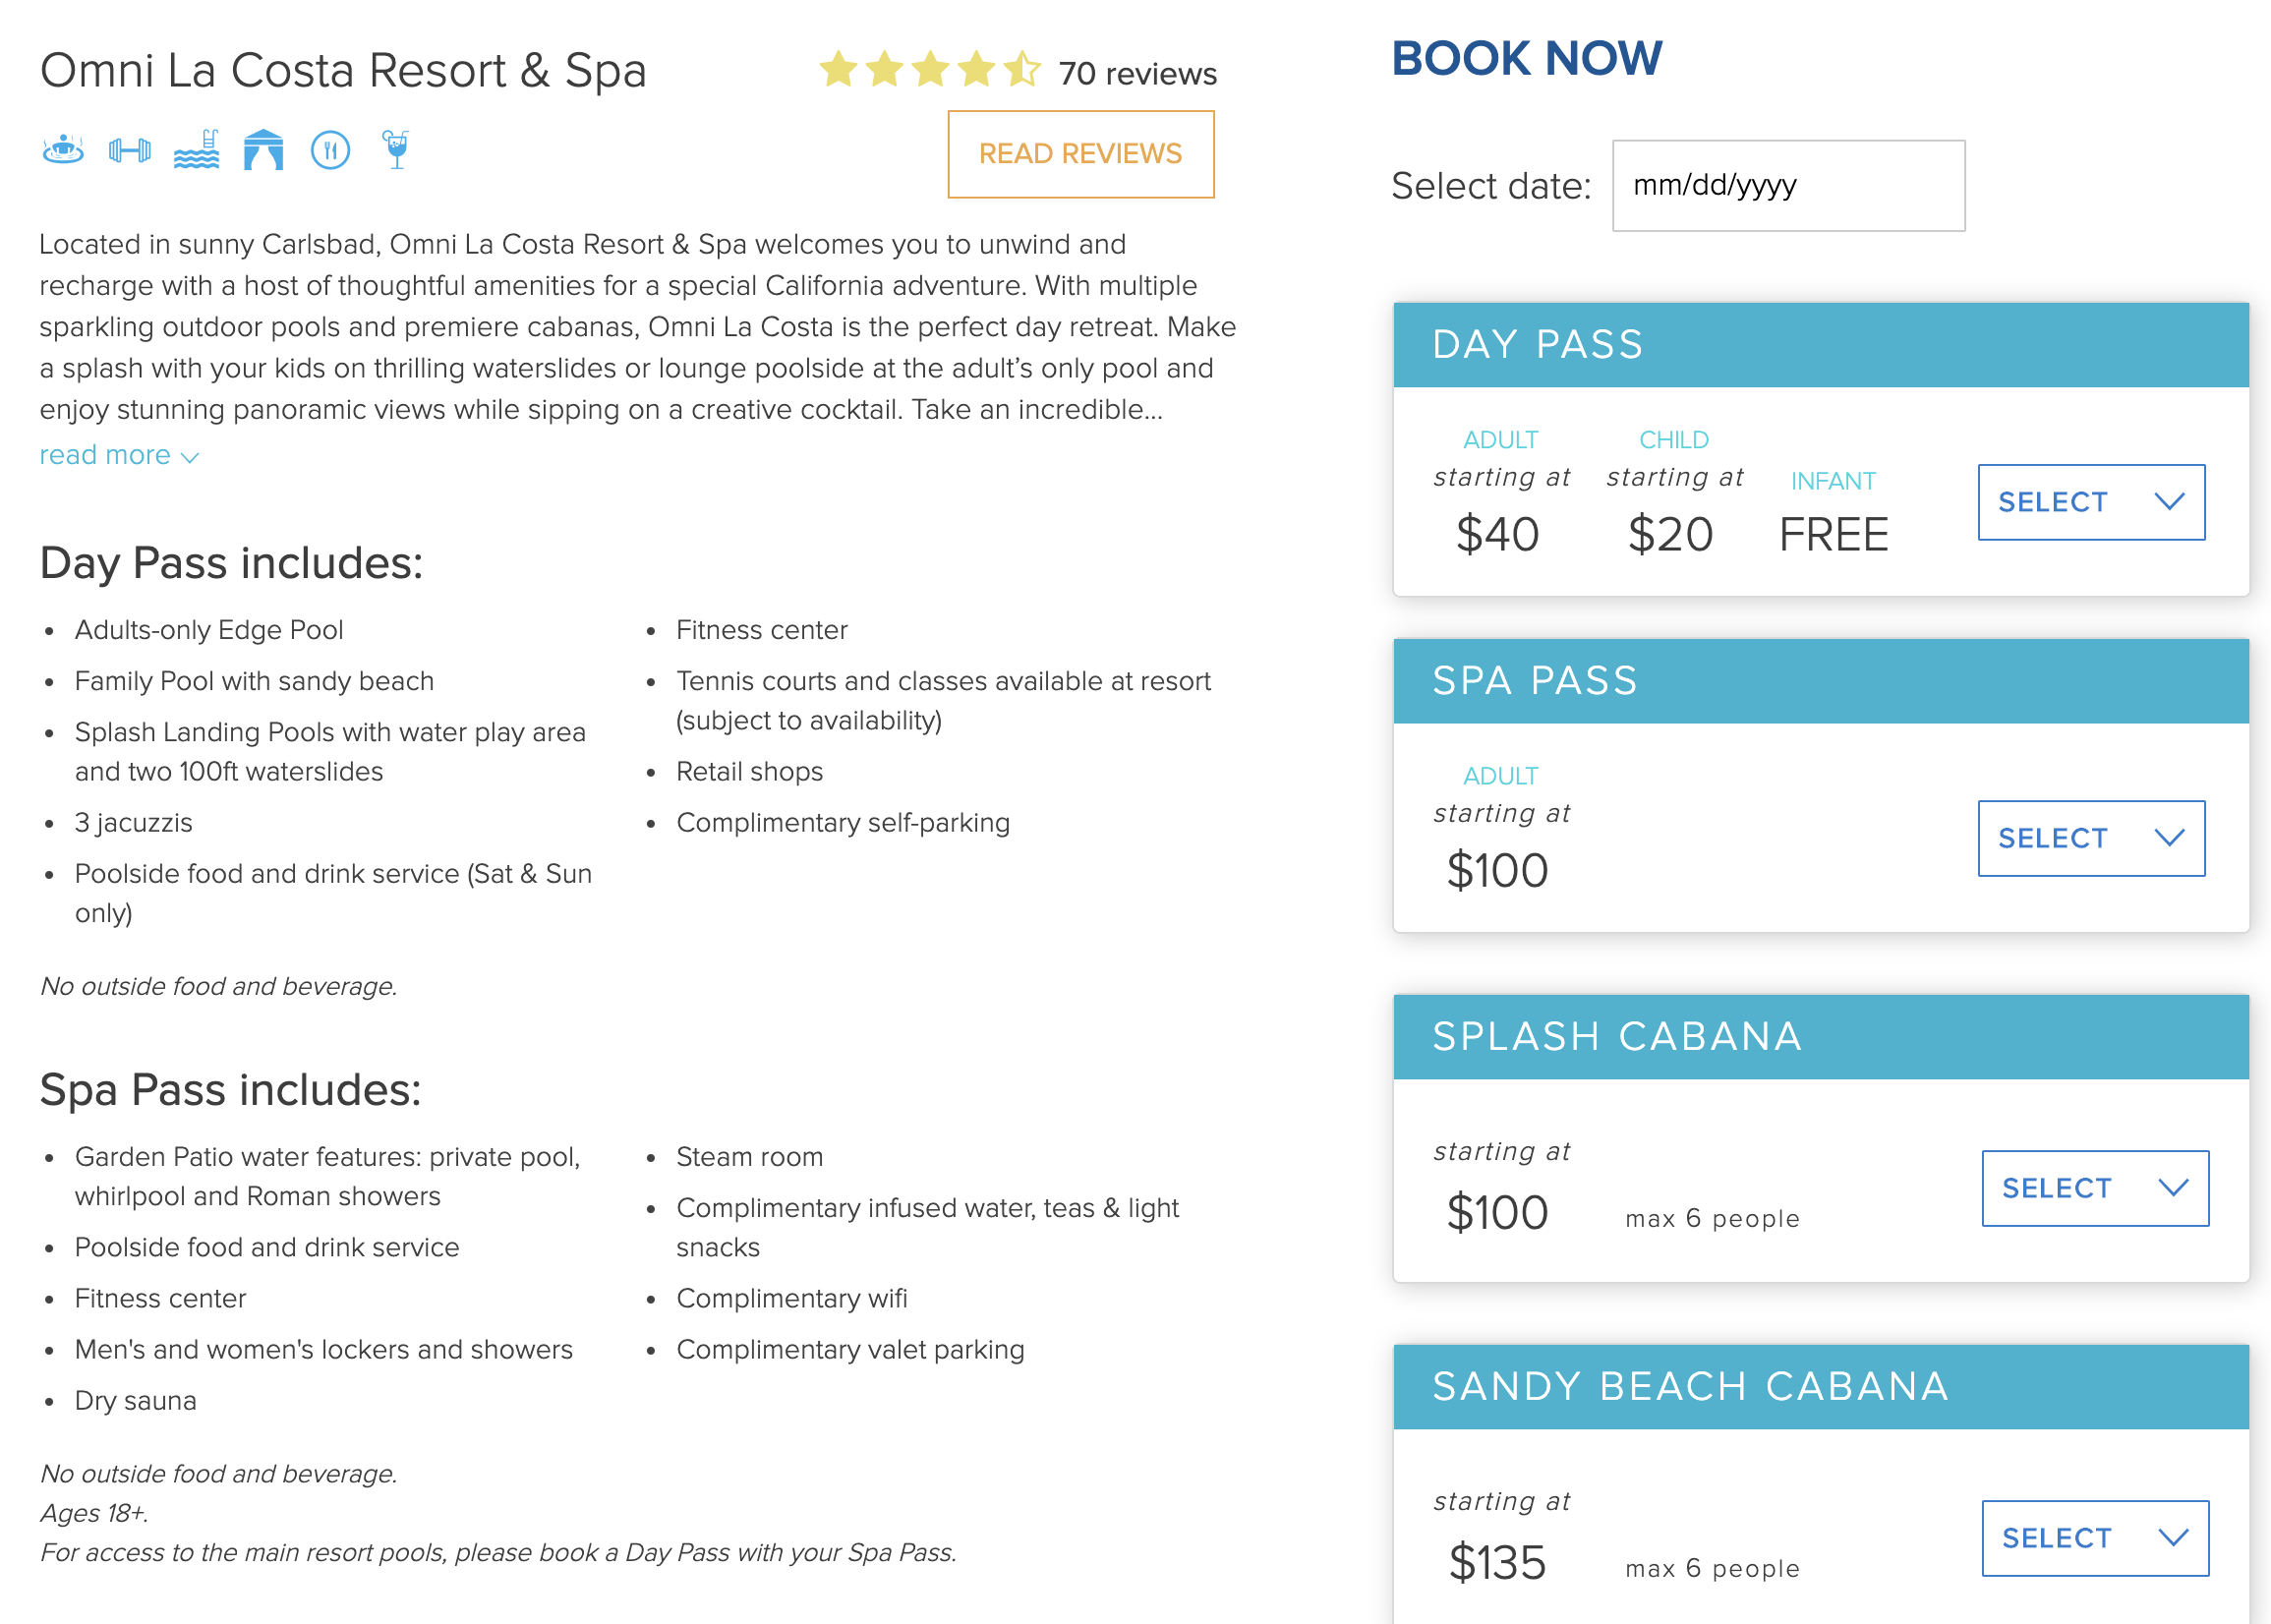 The available options for cabanas and day passes at Omni La Costa Resort and Spa in San Diego.